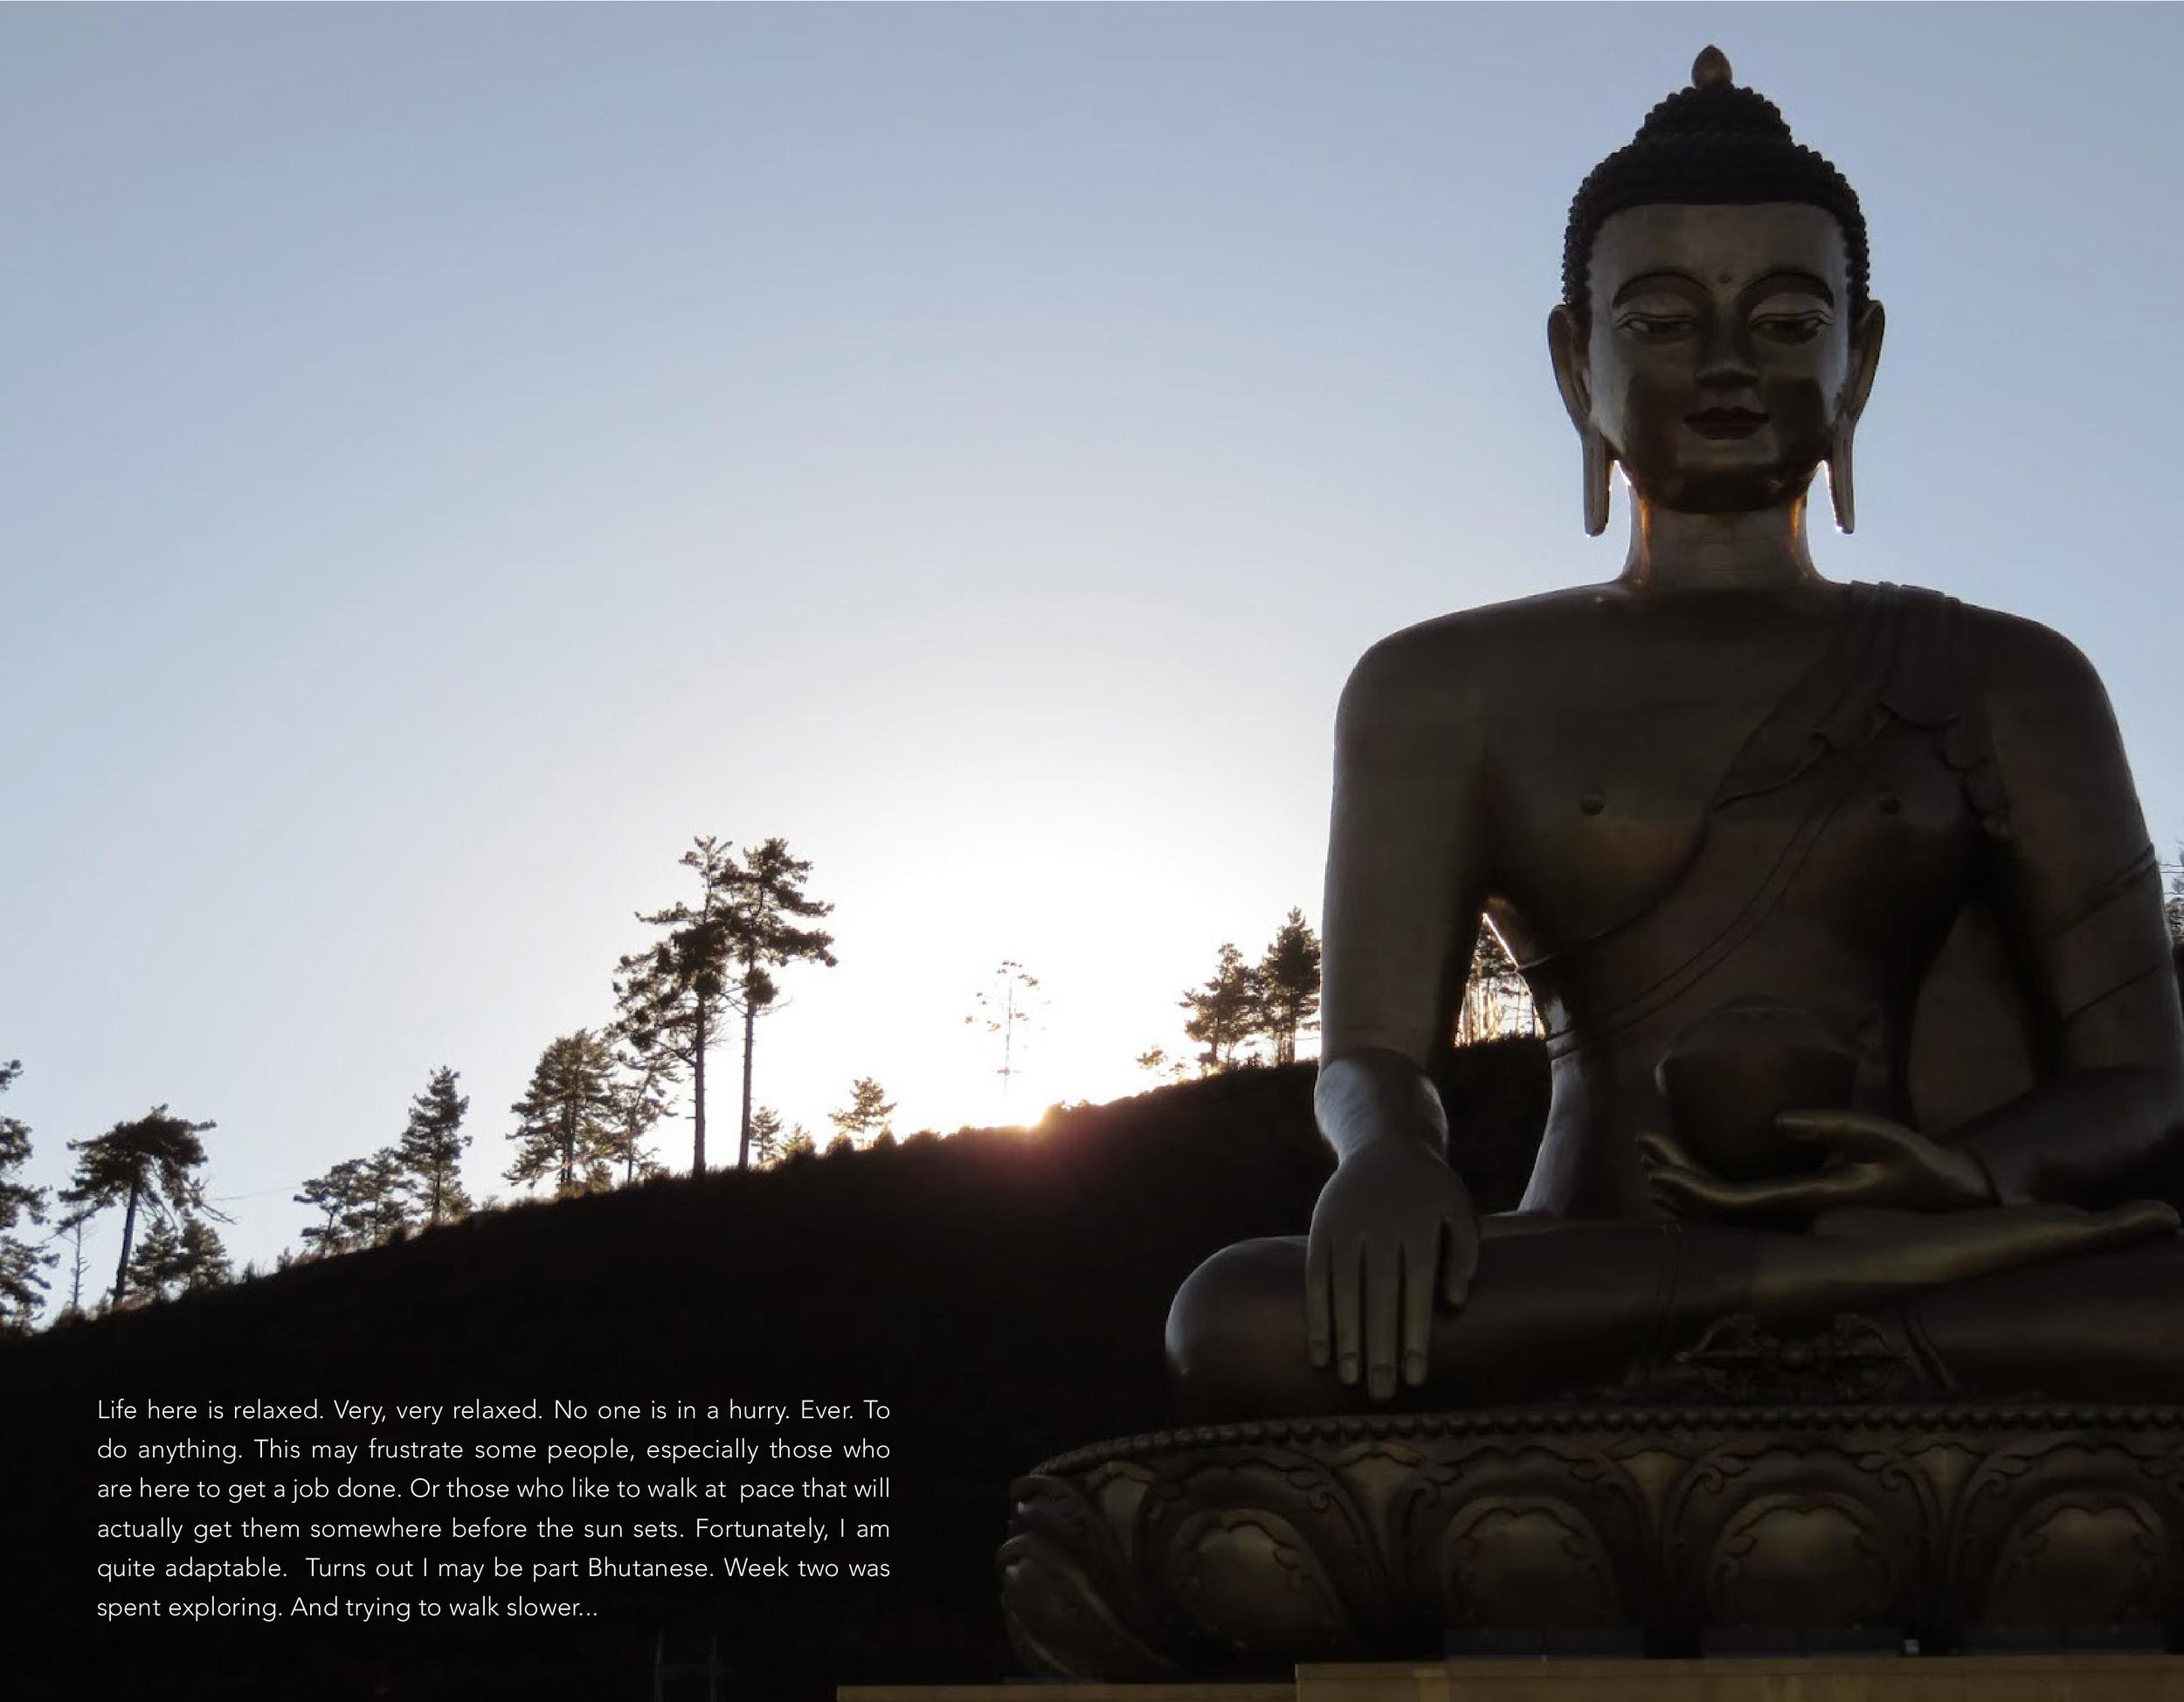 travels_with_a_burro_bhutan_02-page-002.jpg